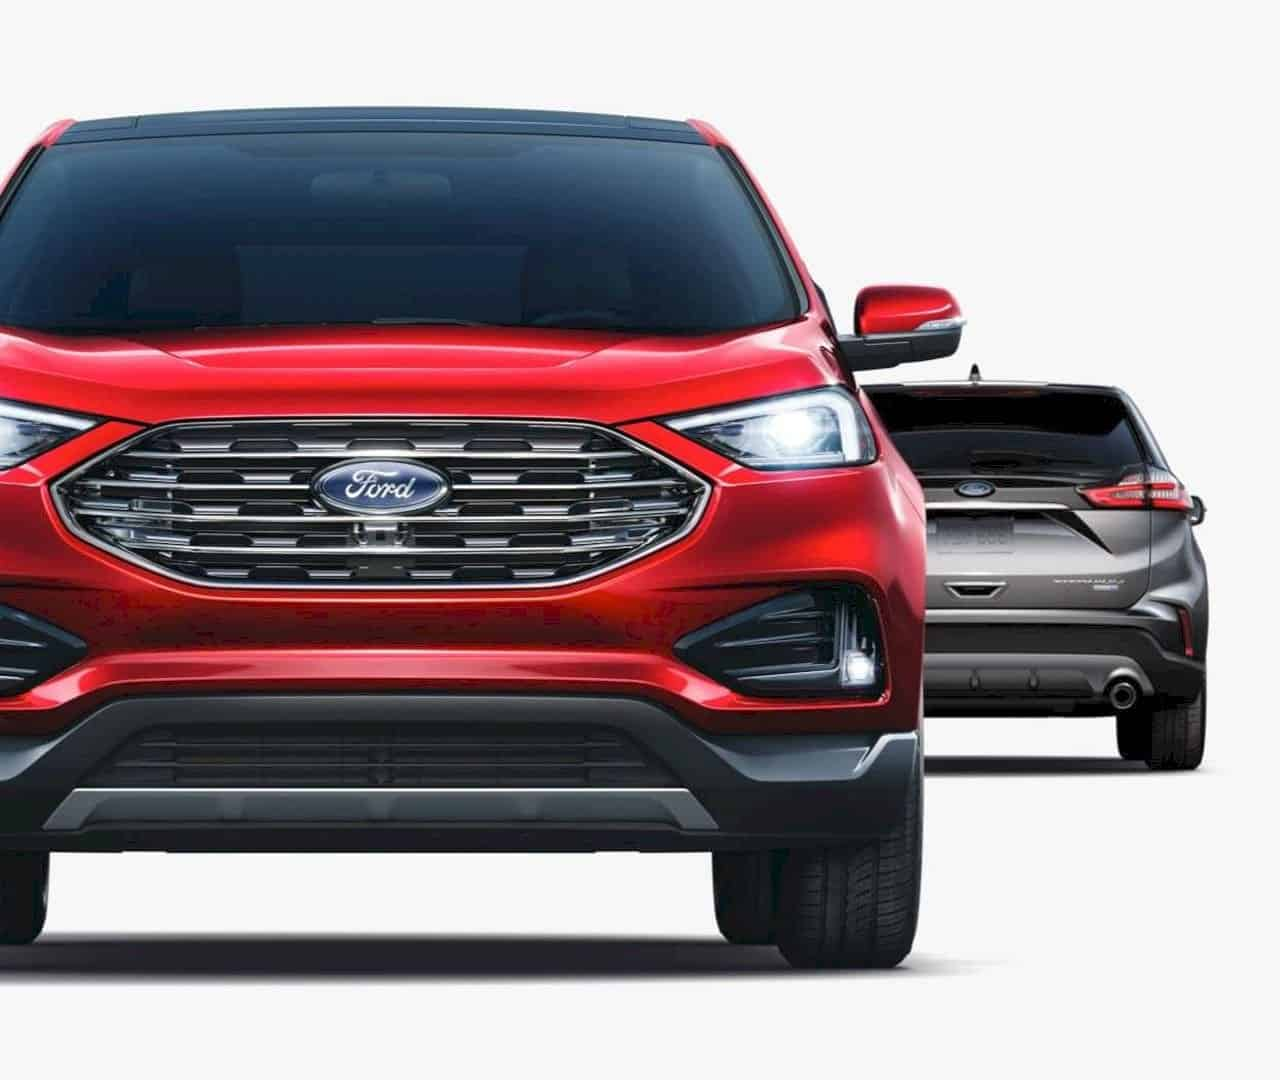 2017/2018 Ford Reviews